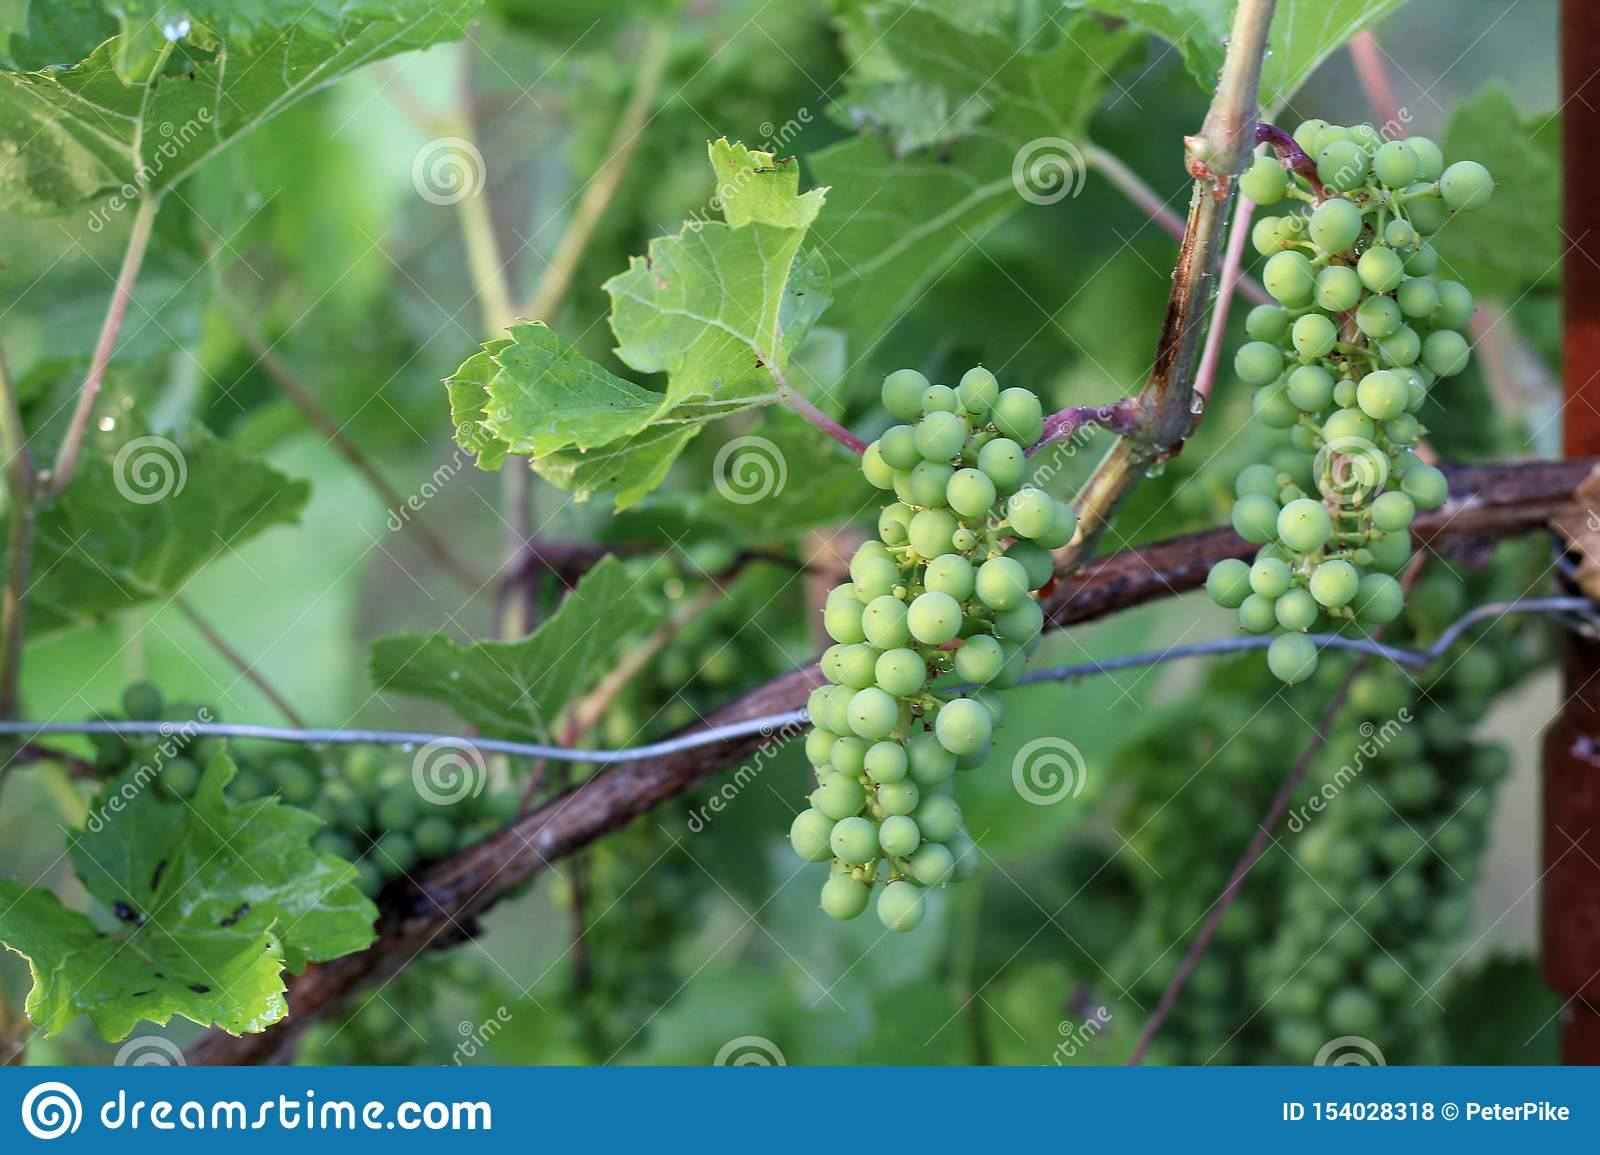 Vineyard after the rain. Bunches of grapes close-up with water drops